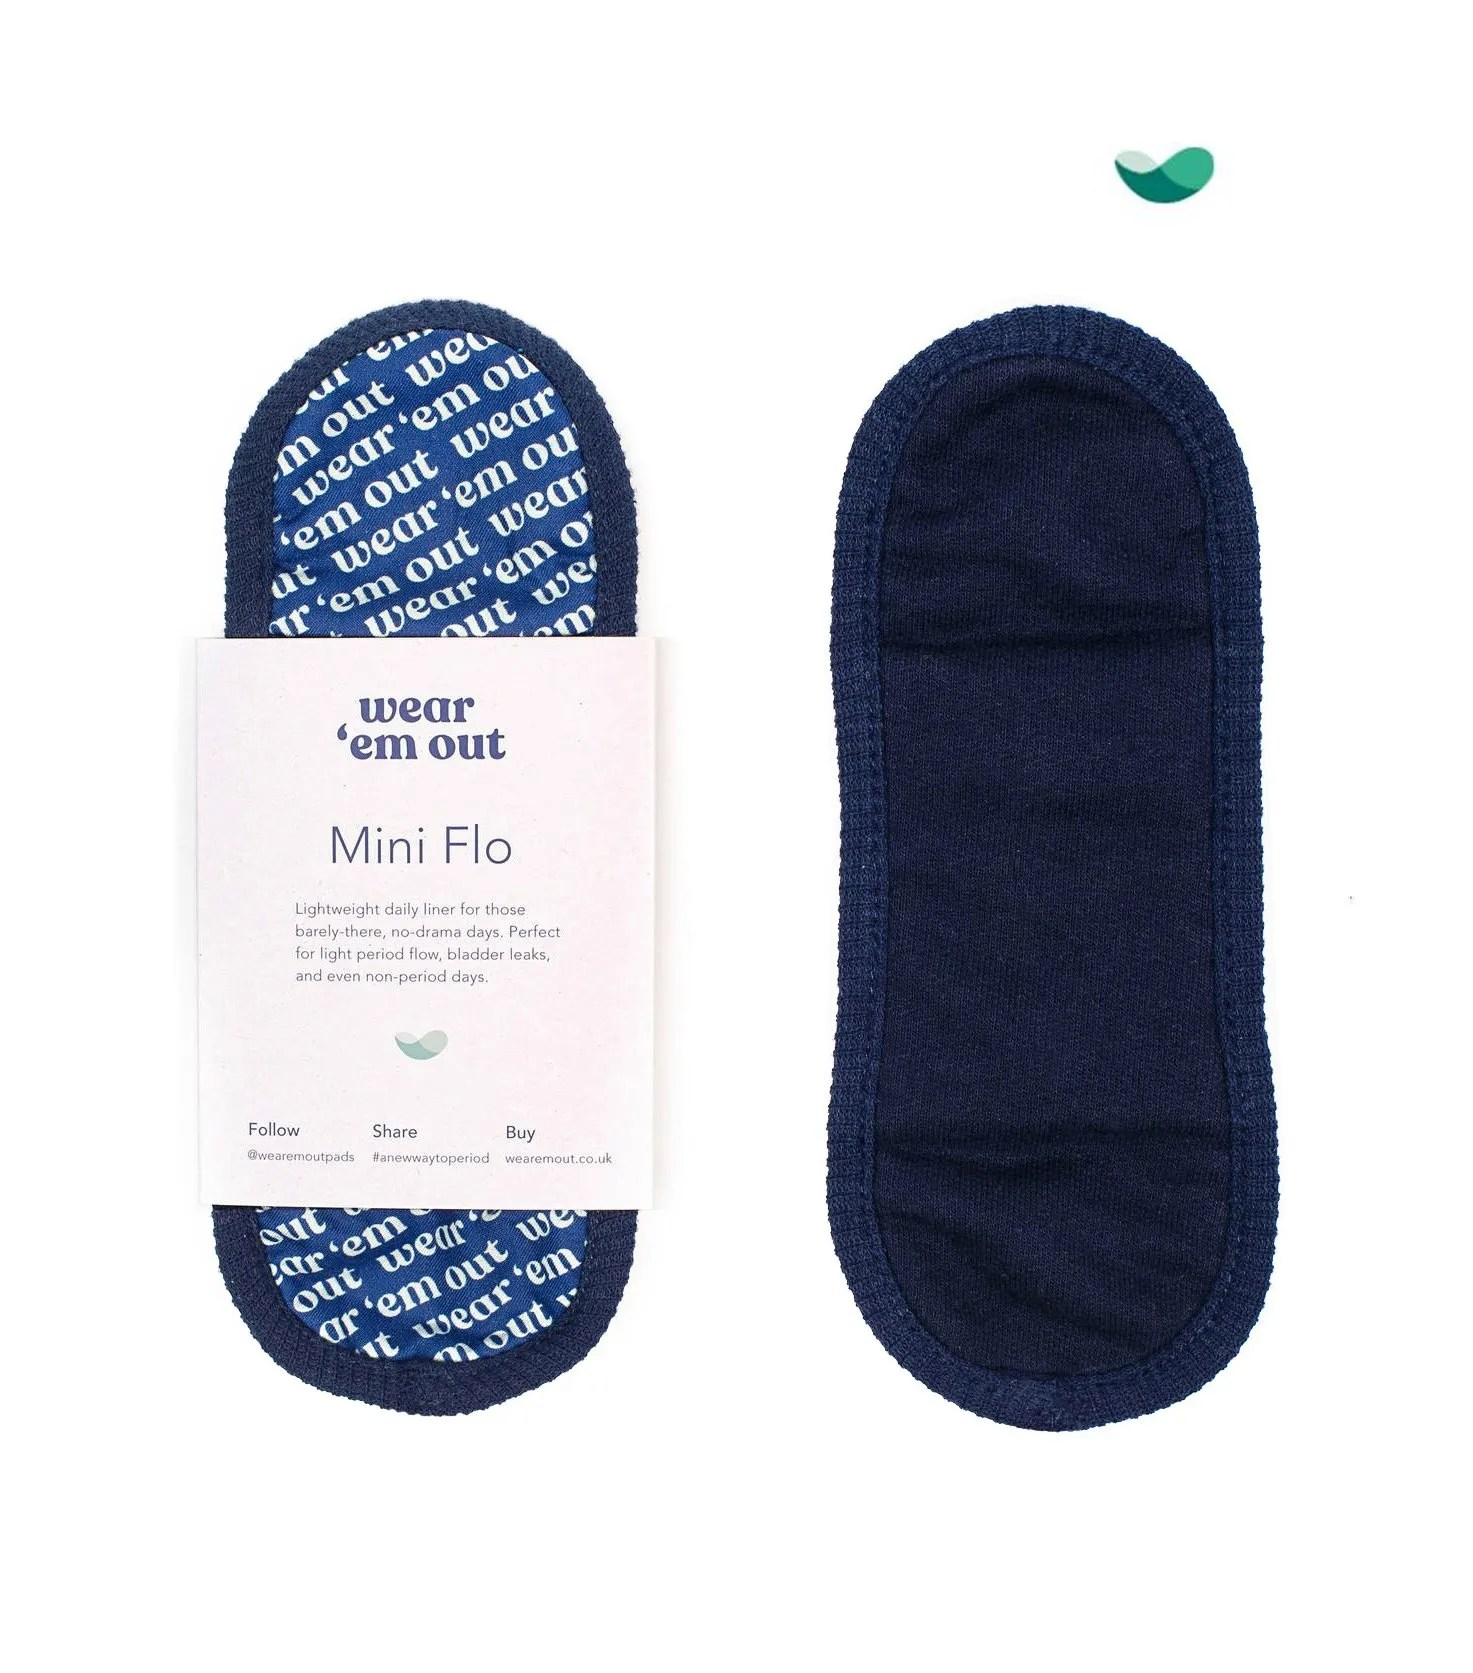 Mini Flo Wear 'em Out reusable Period Sanitary Pad